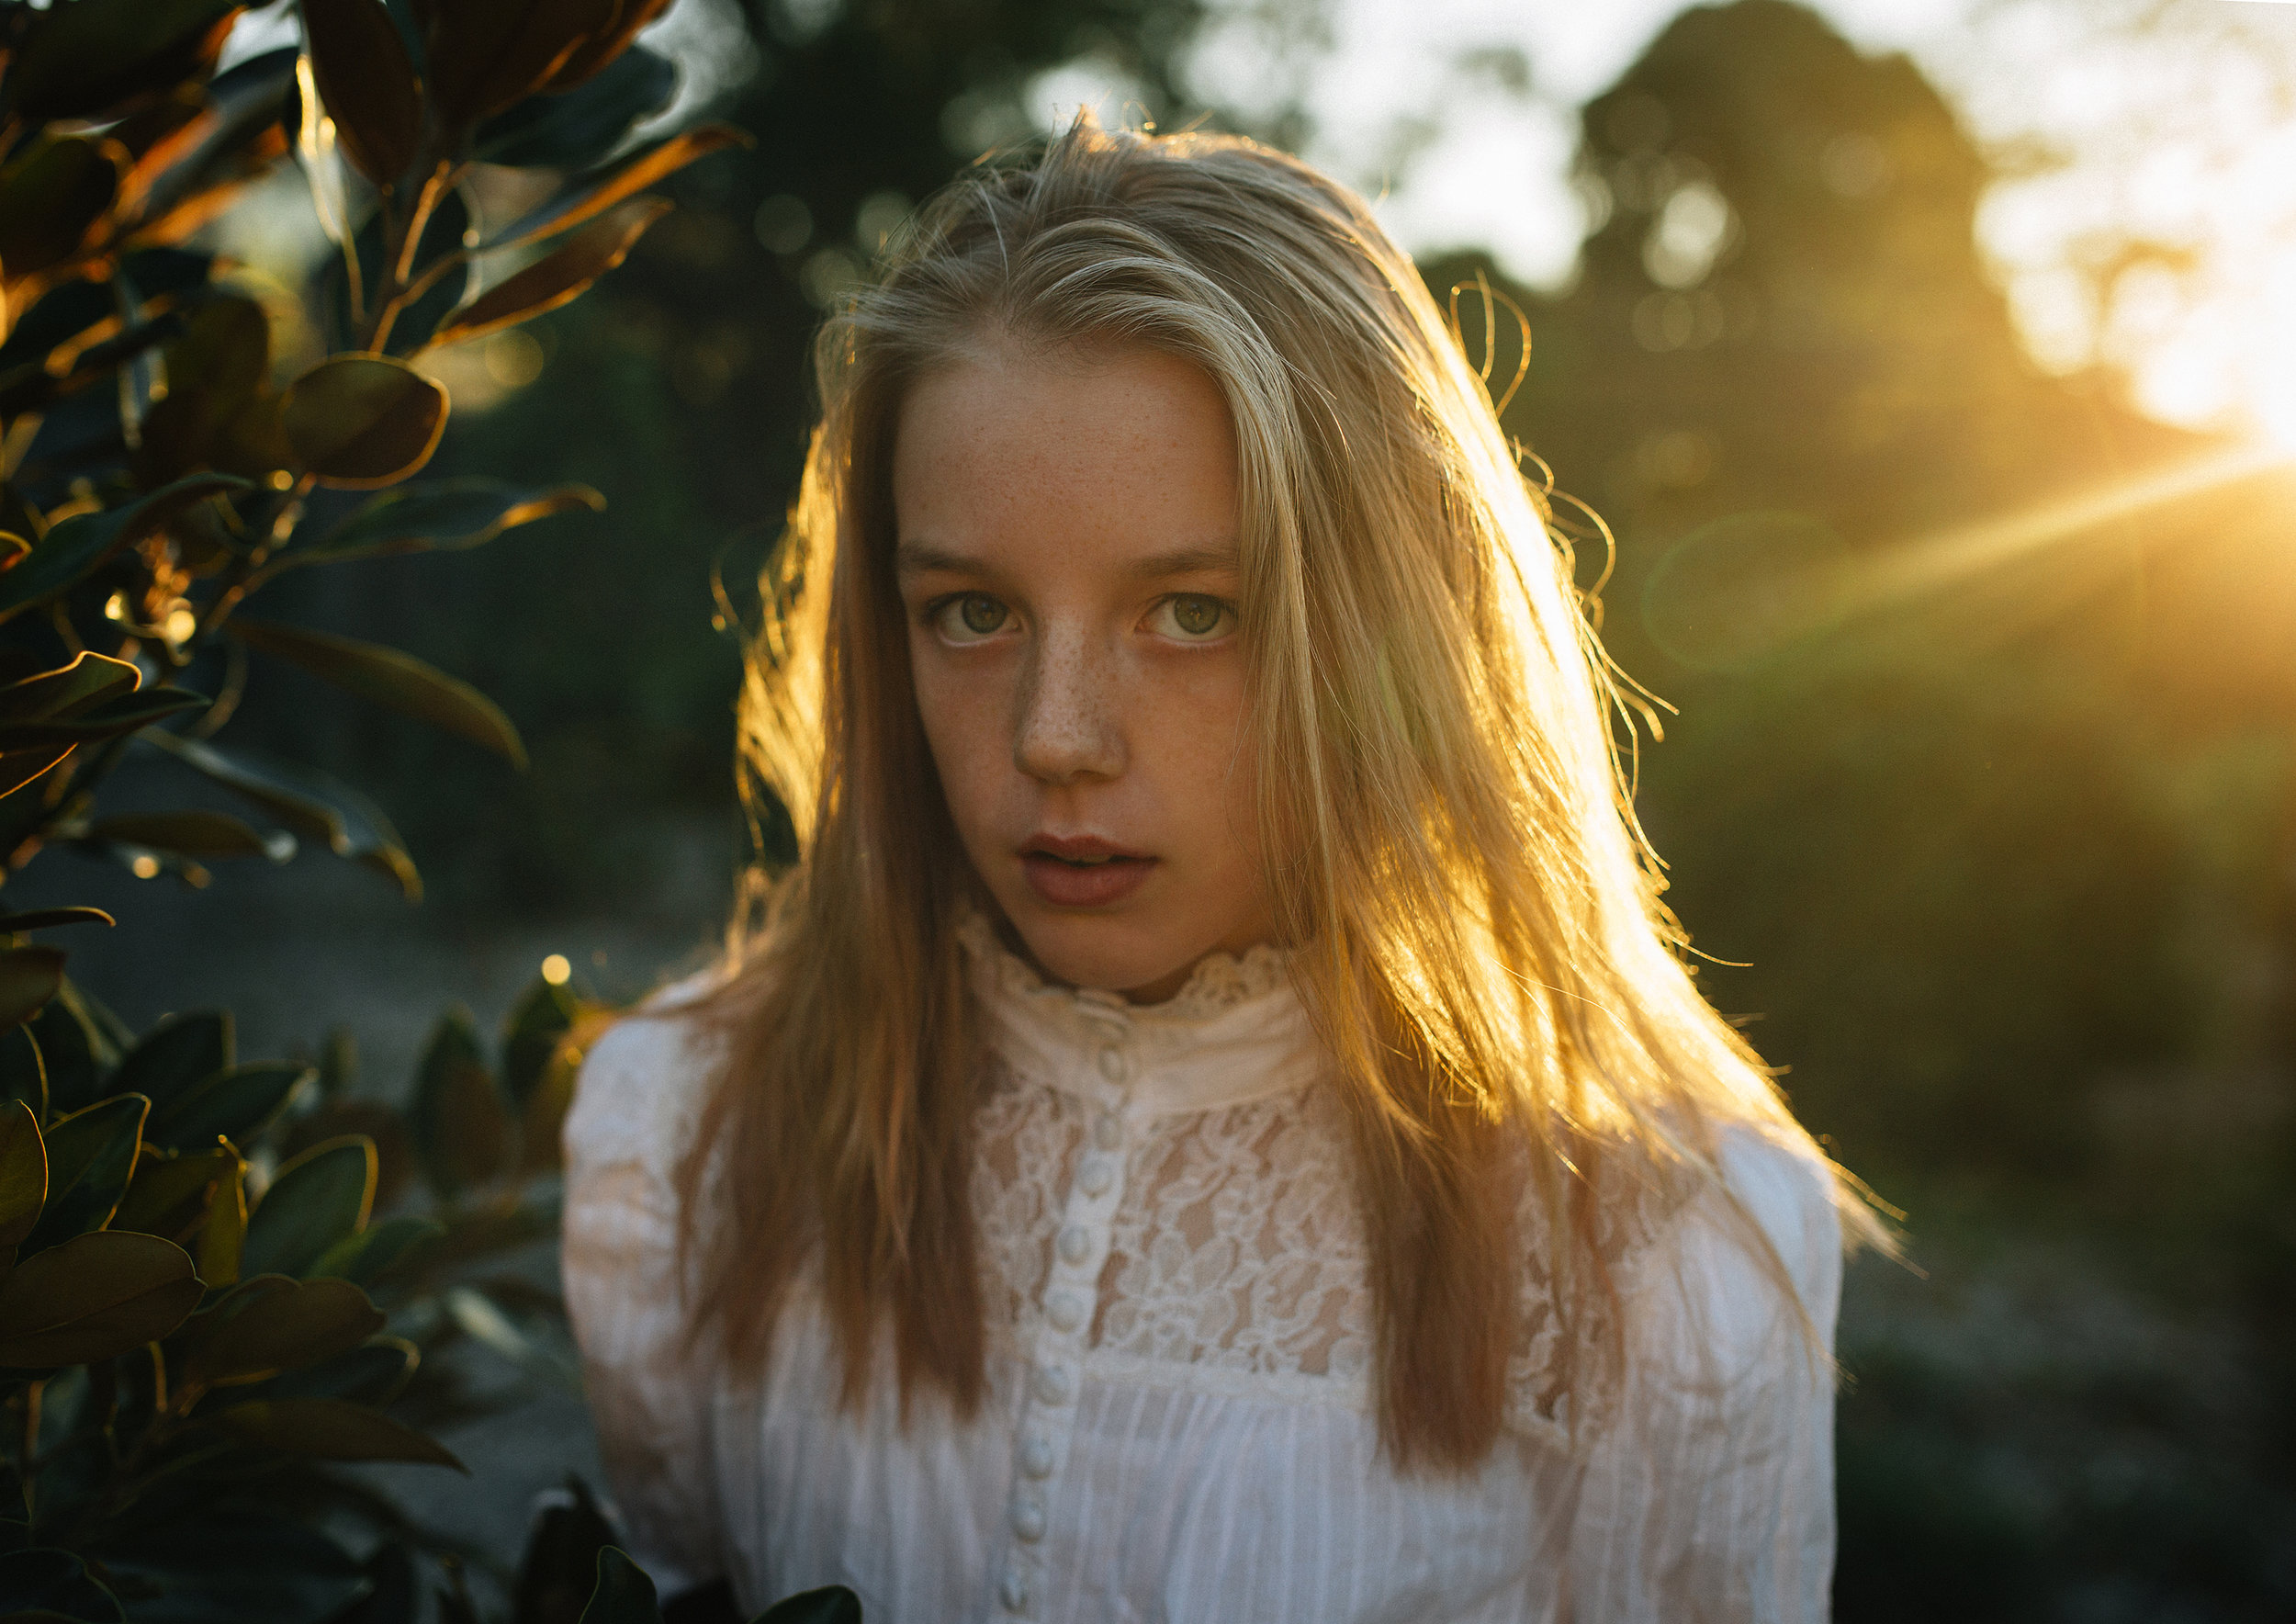 Beautiful Autumn light during a tween styled photo shoot